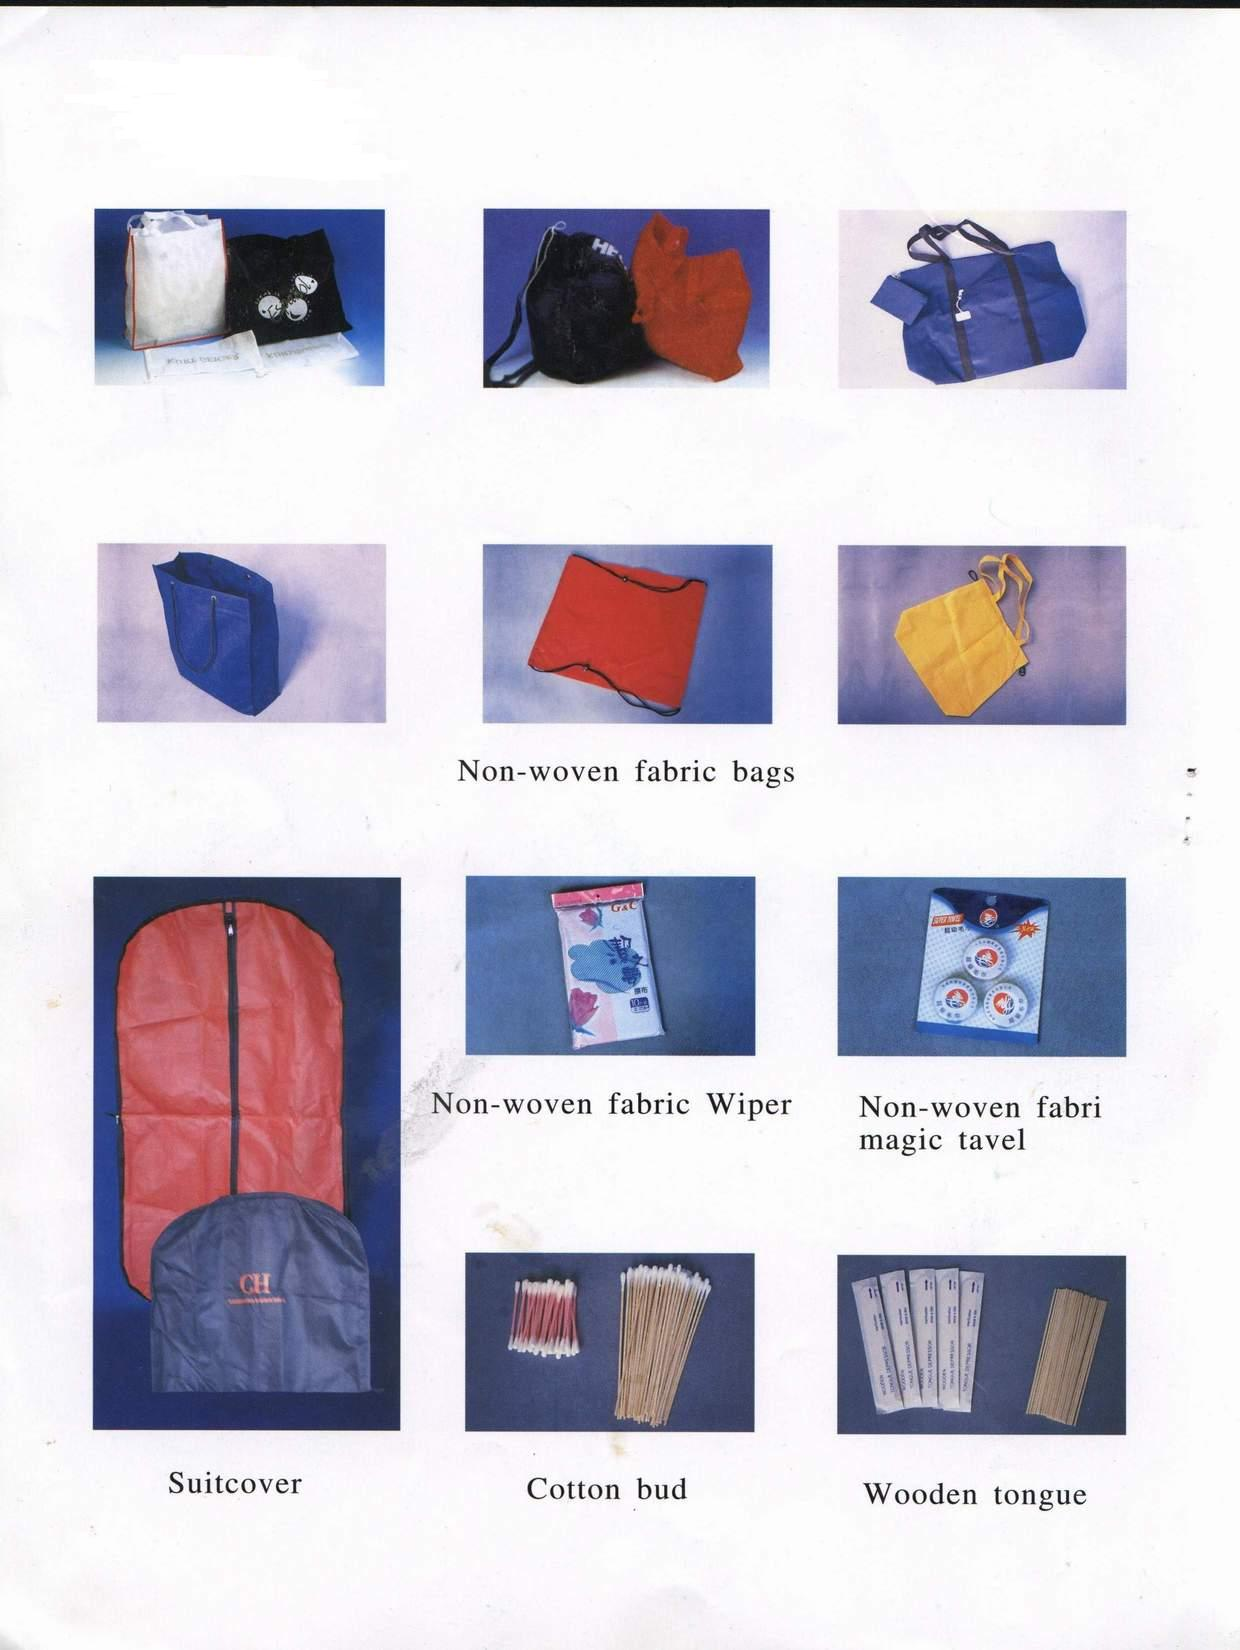 Disposable safety products